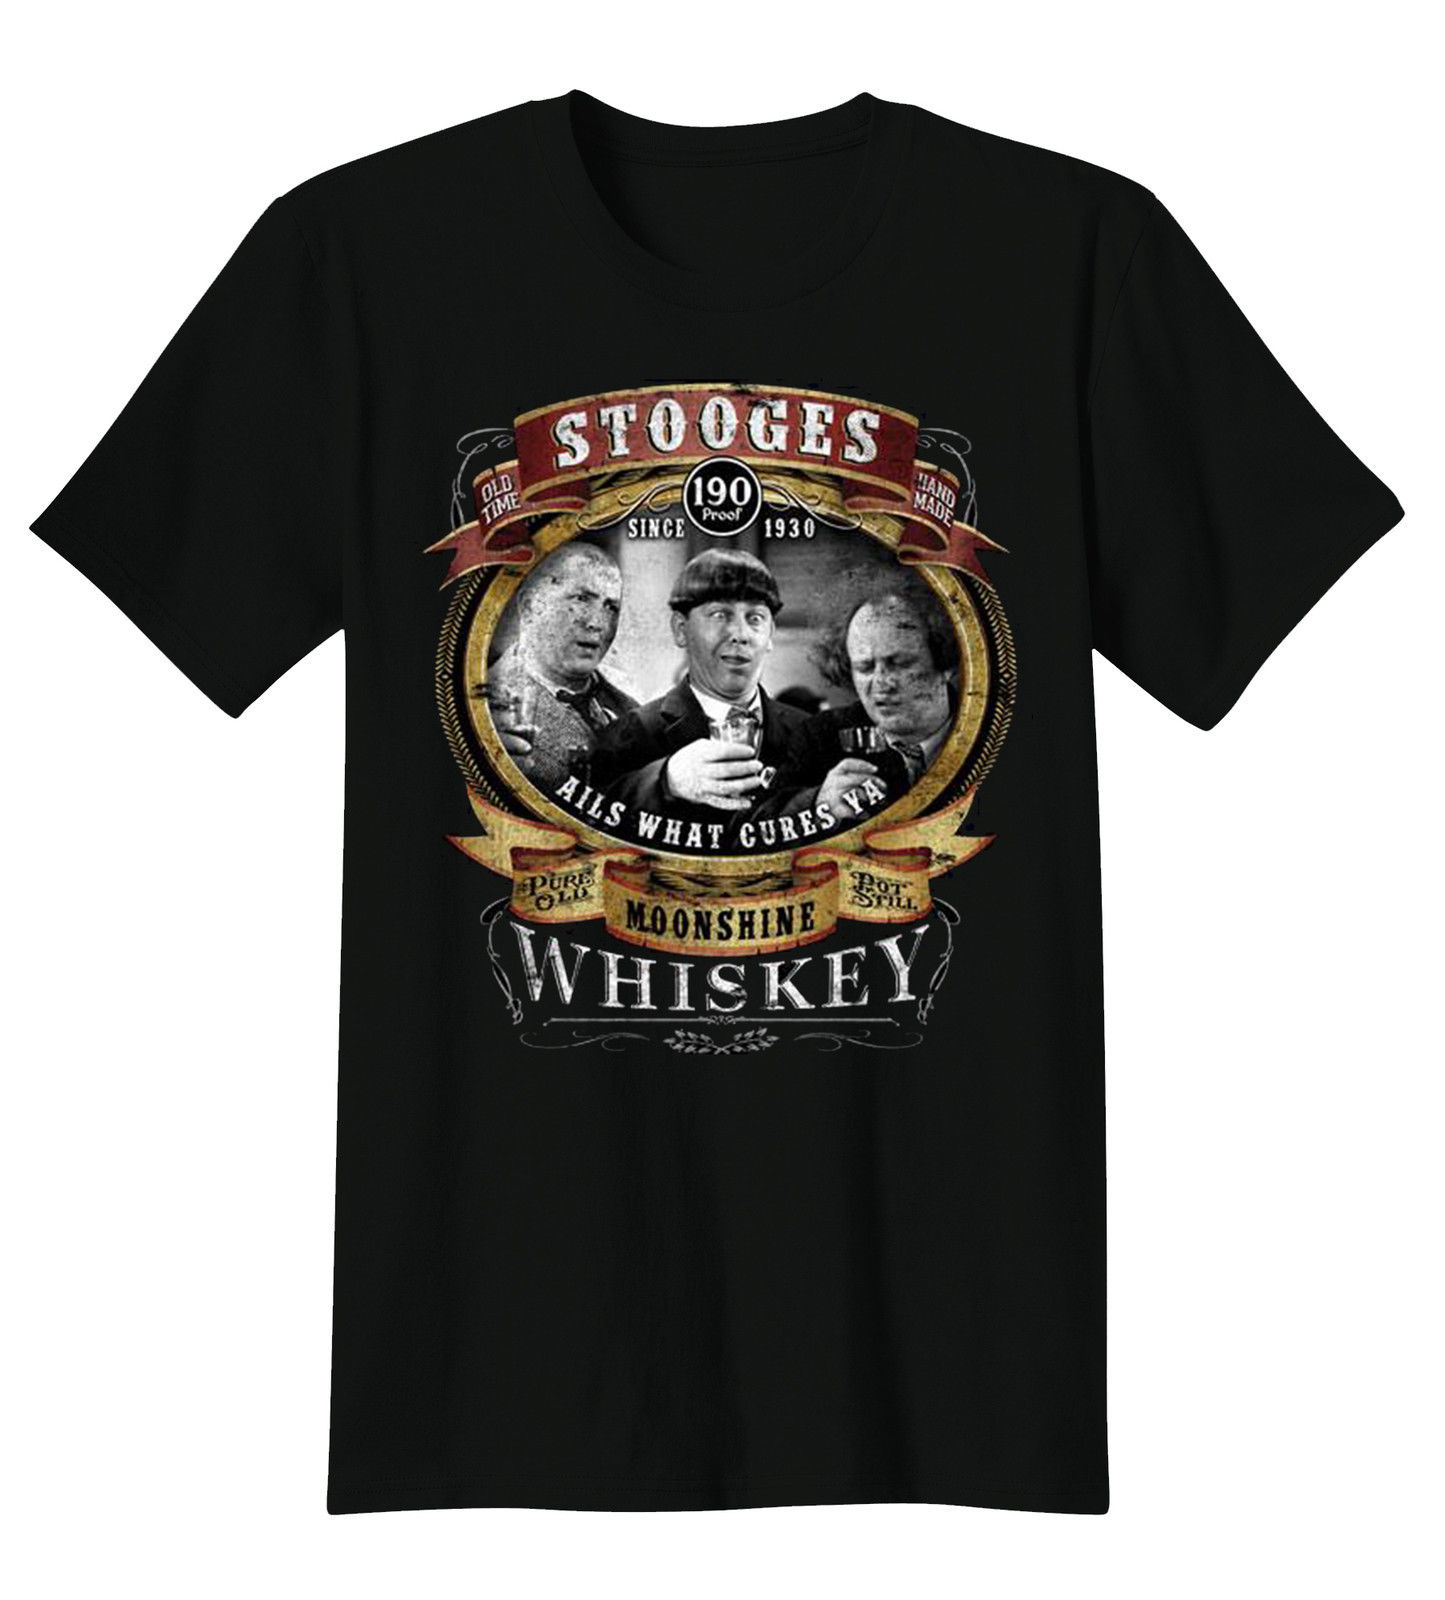 Gildan Three Stooges T-Shirt Larry Moe & Curly Whiskey Moonshine Funny Comedy Legends